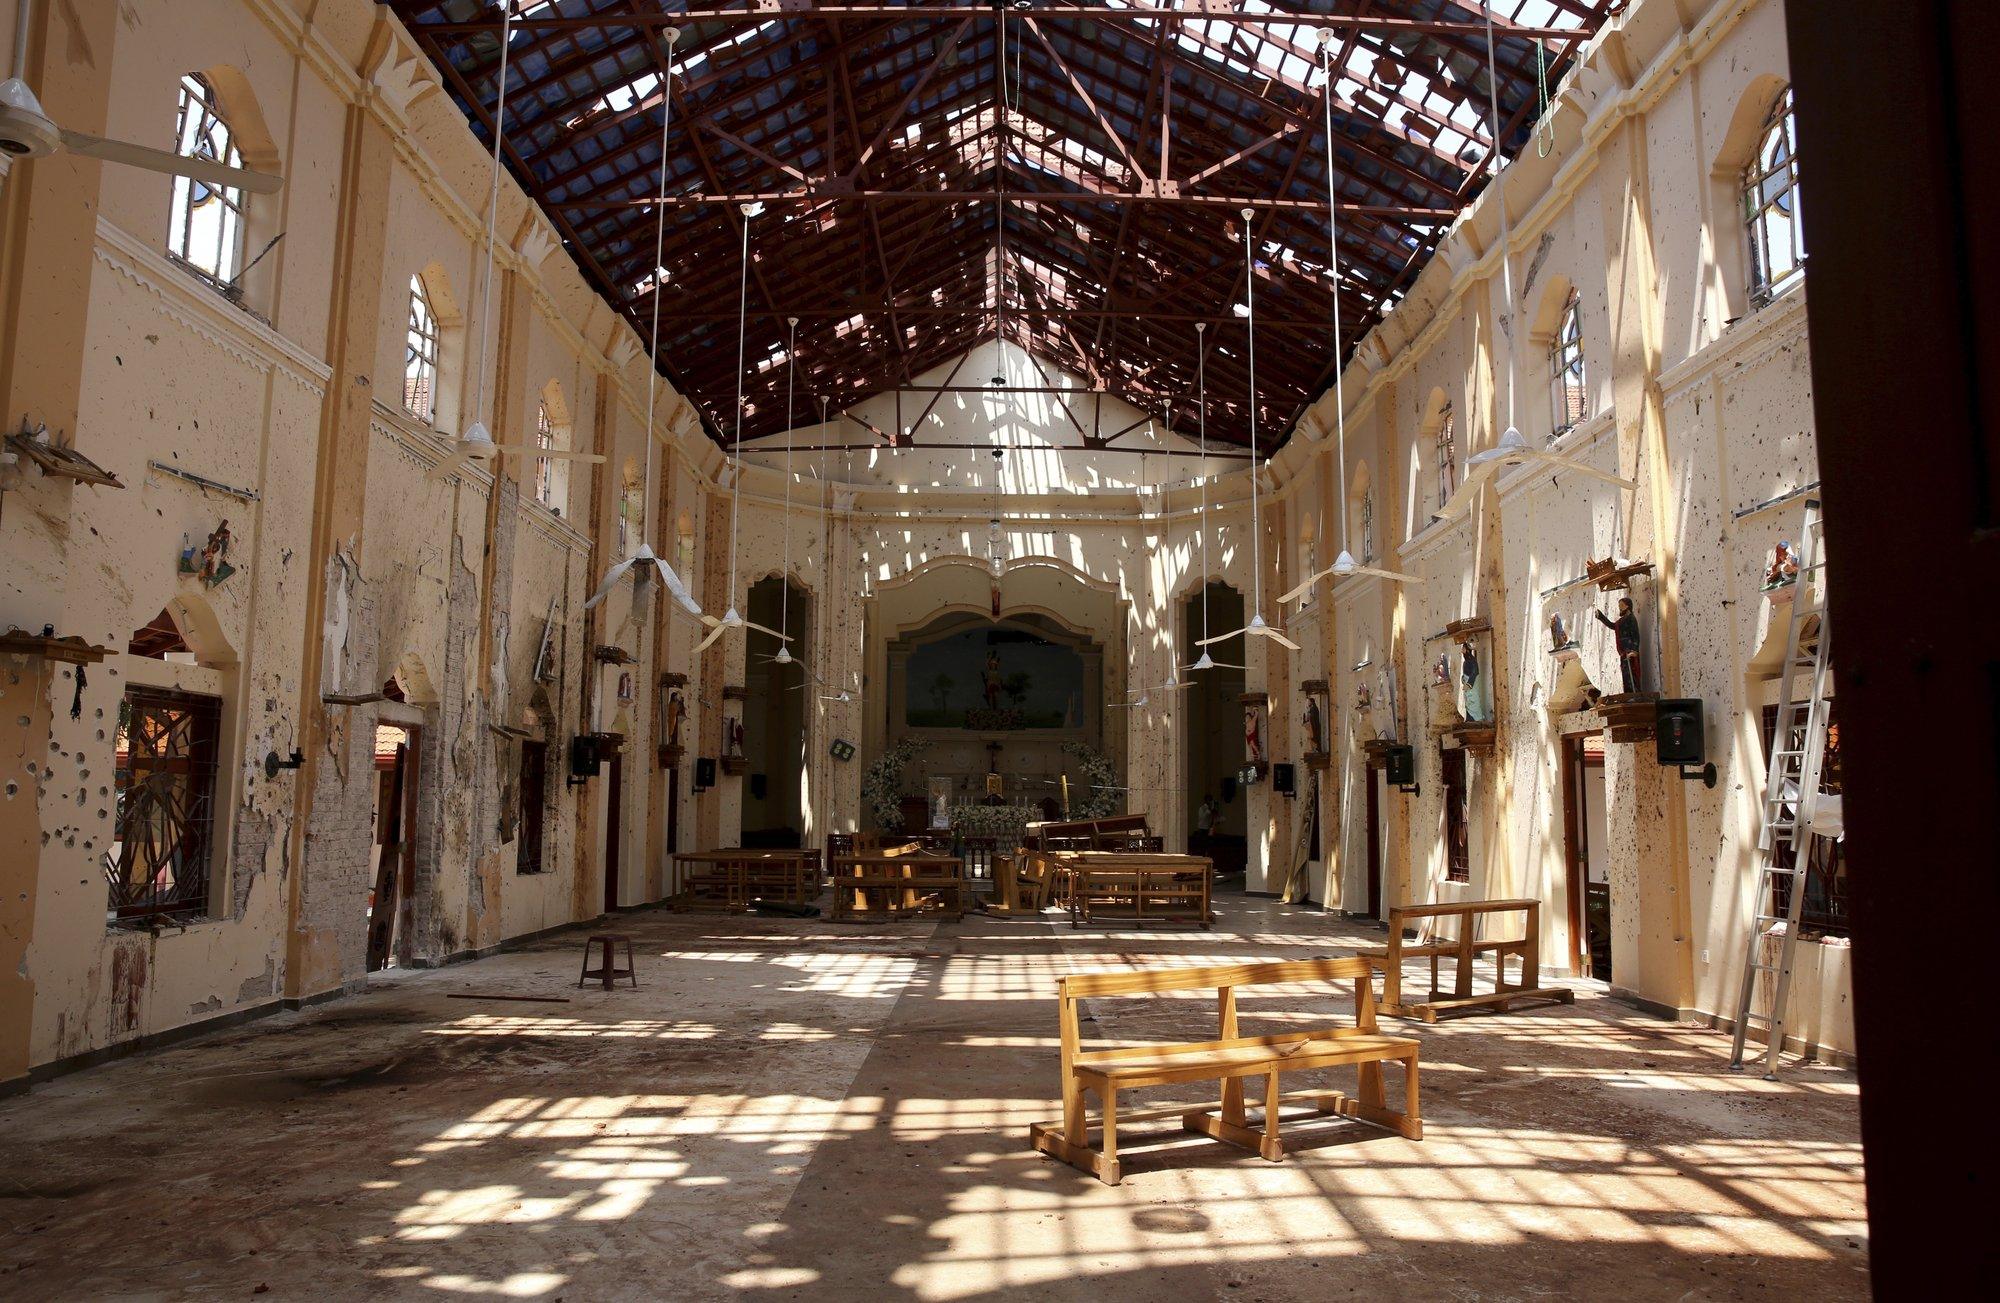 In this Thursday, April 25, 2019 photo, sunlight steams in from gaping holes at St. Sebastian's Church in Negombo, north of Colombo, Sri Lanka. Nearly a week later, the smell of death is everywhere, though the bodies are long gone. Yet somehow, there's a beauty to St. Sebastian's, a neighborhood church in a Catholic enclave north of Sri Lanka's capital, where a man calmly walked in during Easter services with a heavy backpack and blew himself up. (AP Photo/Manish Swarup)